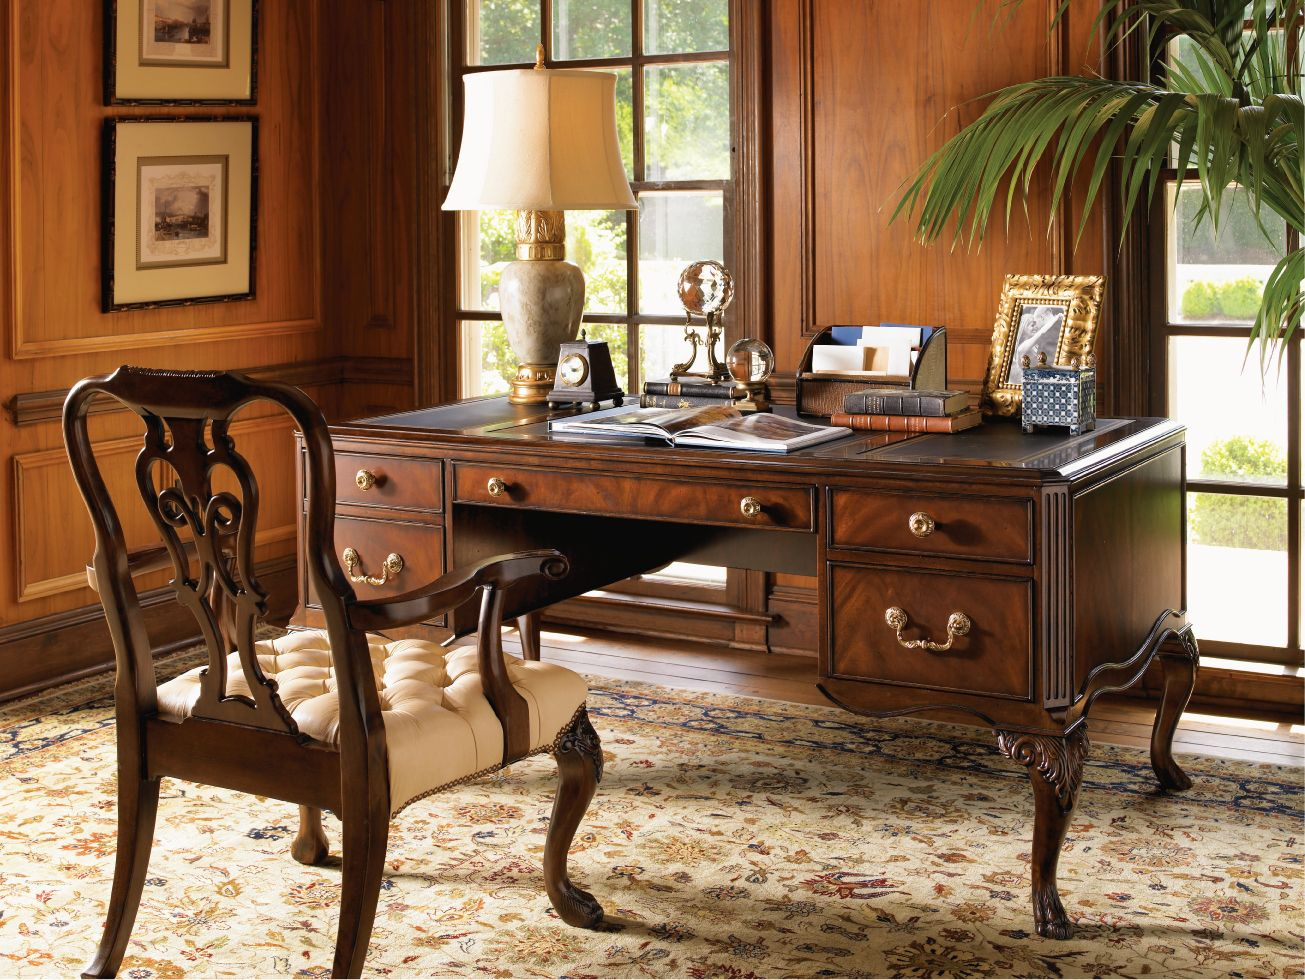 53 Really Great Home Office Ideas Photos Stylish Office Decor Home Office Decor Vintage Home Offices